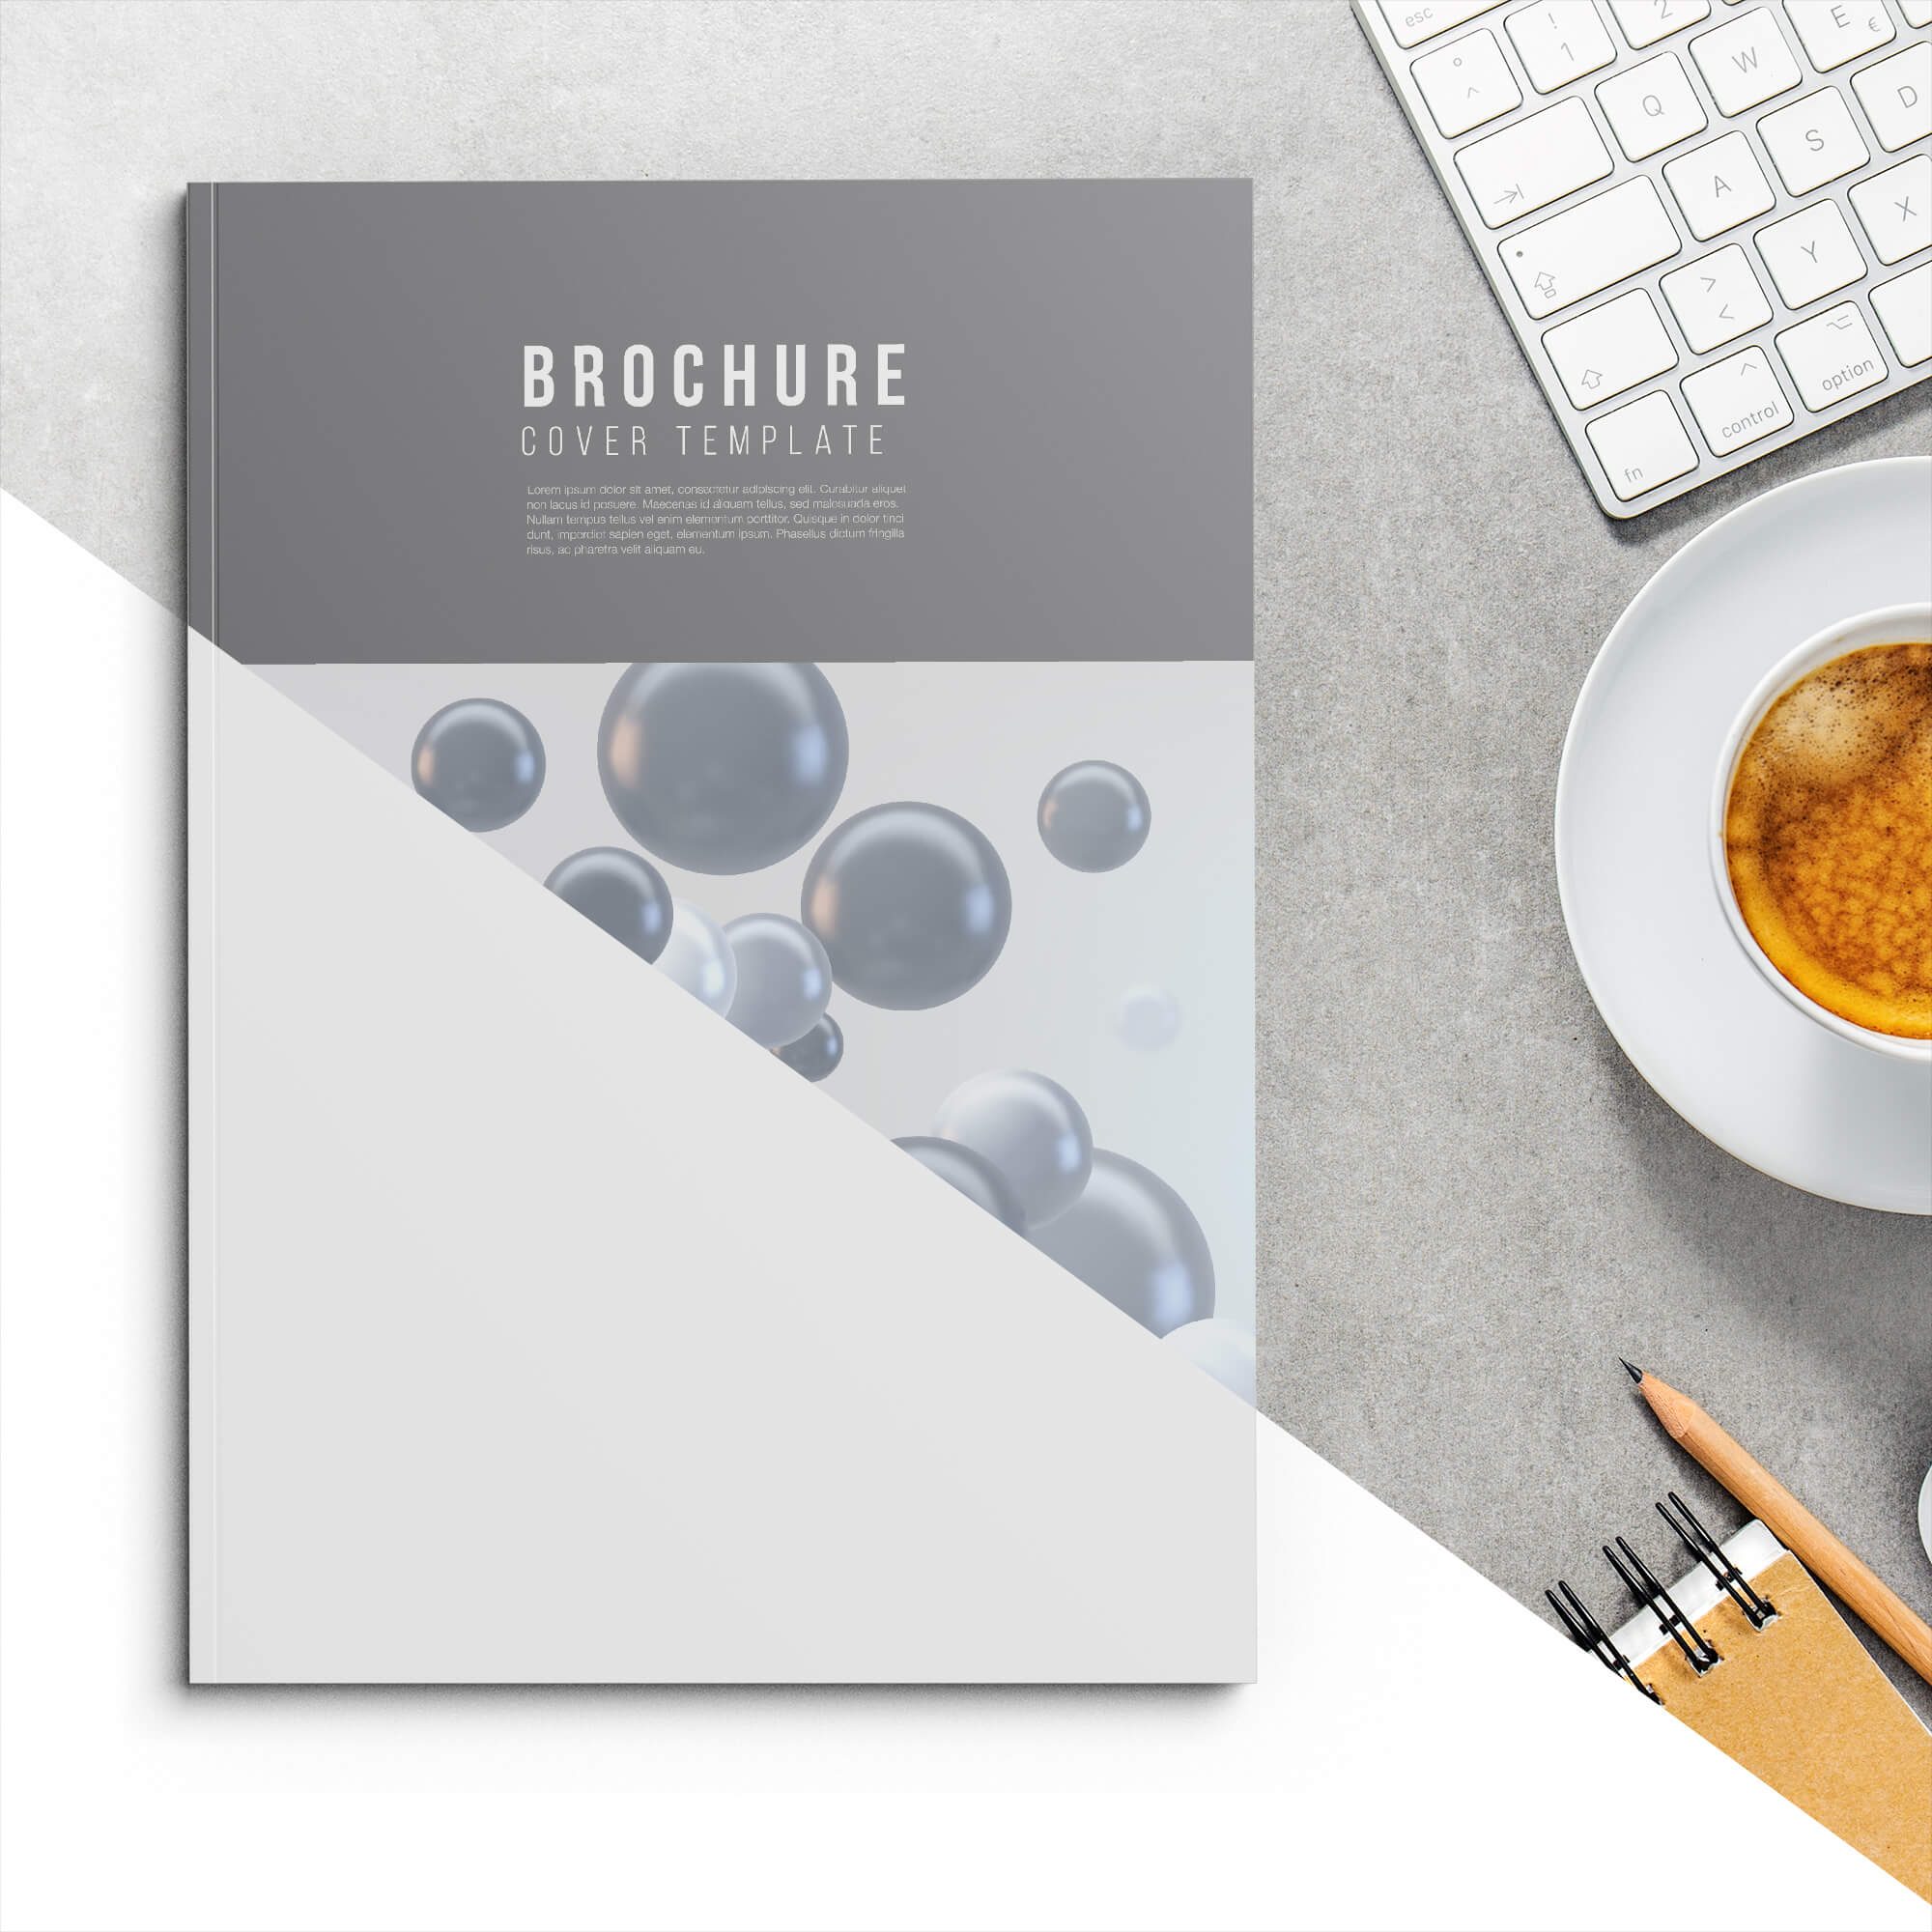 Editable Free Soft Cover Mockup PSD Template